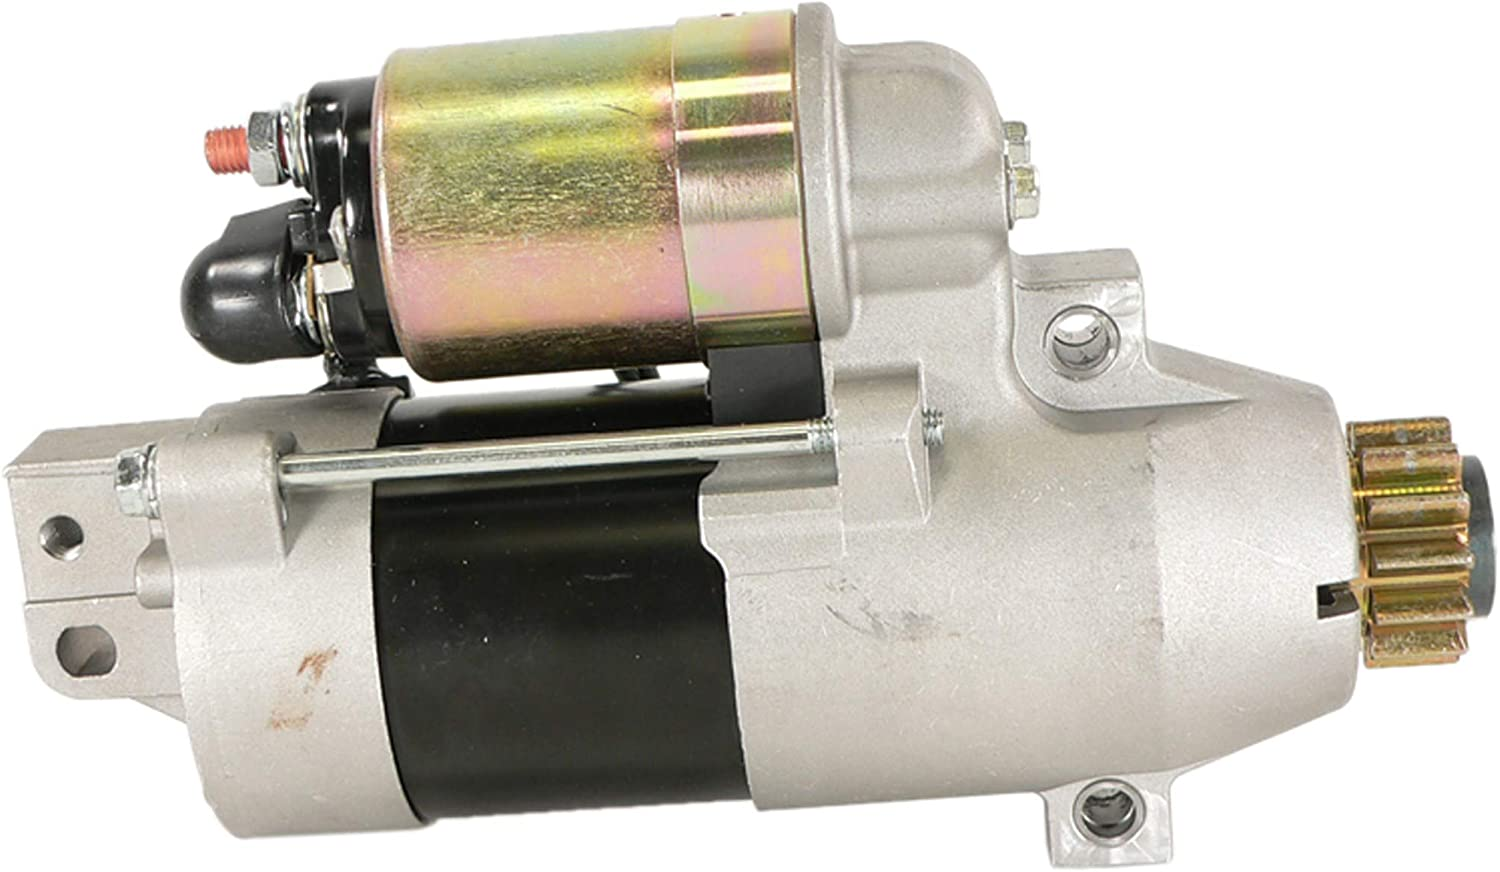 Yamaha Outboard Motor From DB Electrical SHI0122 Starter